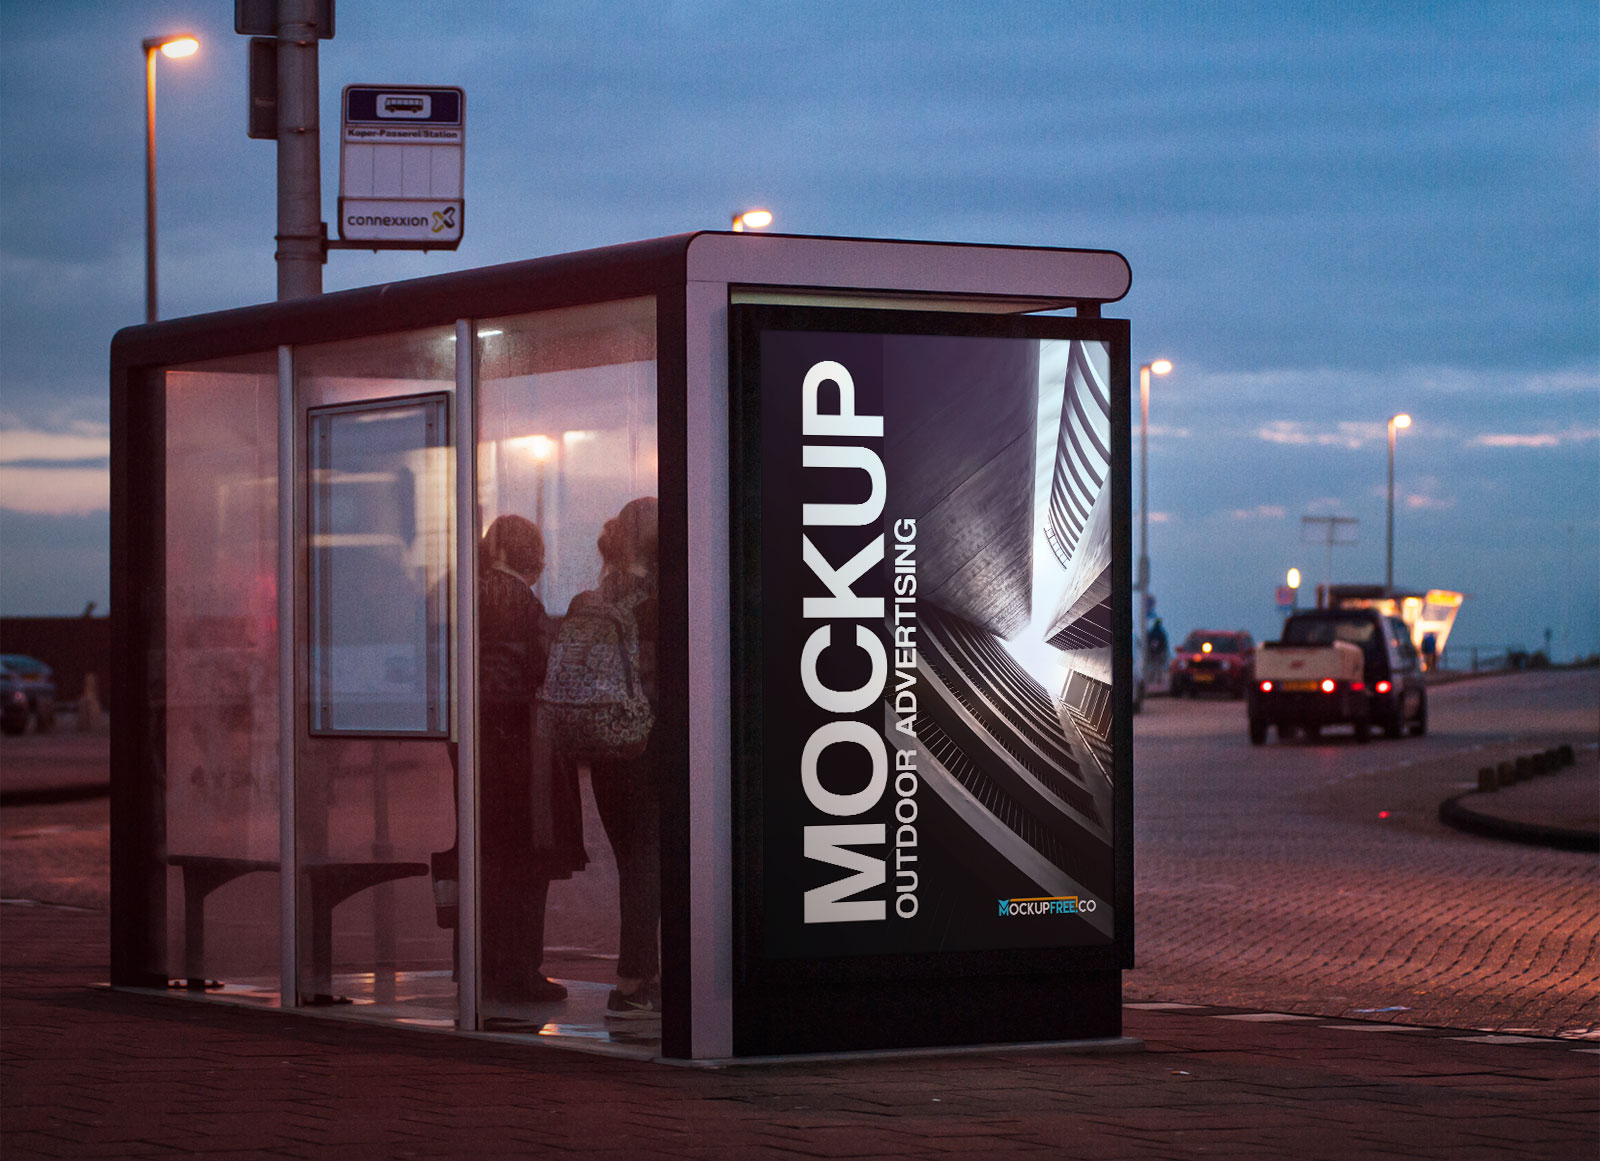 Free-Outdoor-Advertising-Bus-Shelter-Mockup-PSD